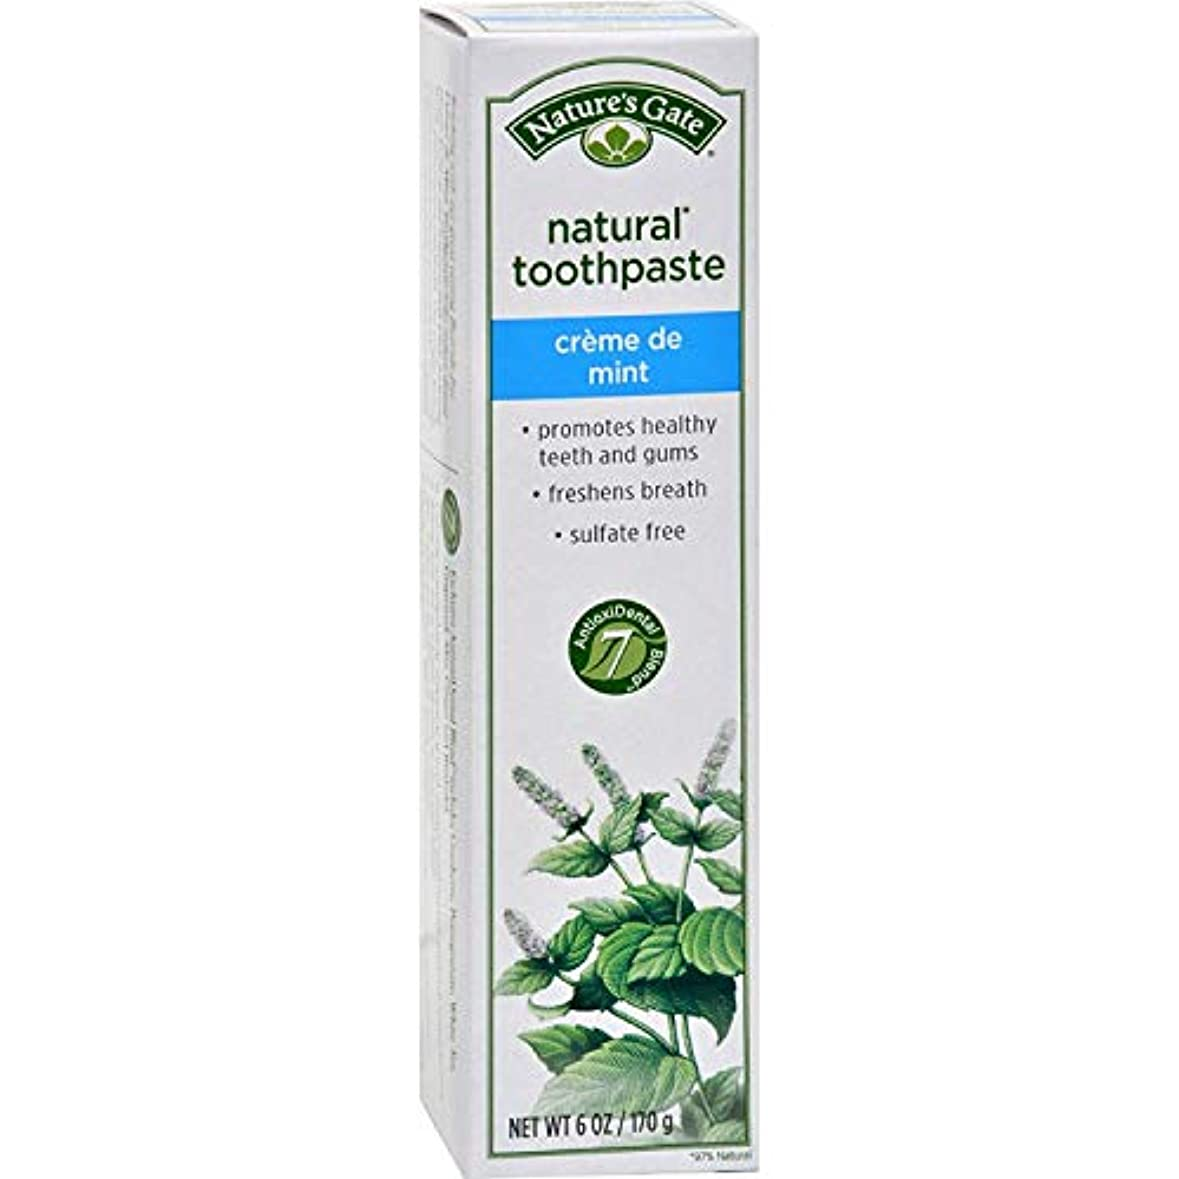 広げるシティ有料Nature's Gate, Natural Toothpaste, Creme de Mint, 6 oz (170 g)